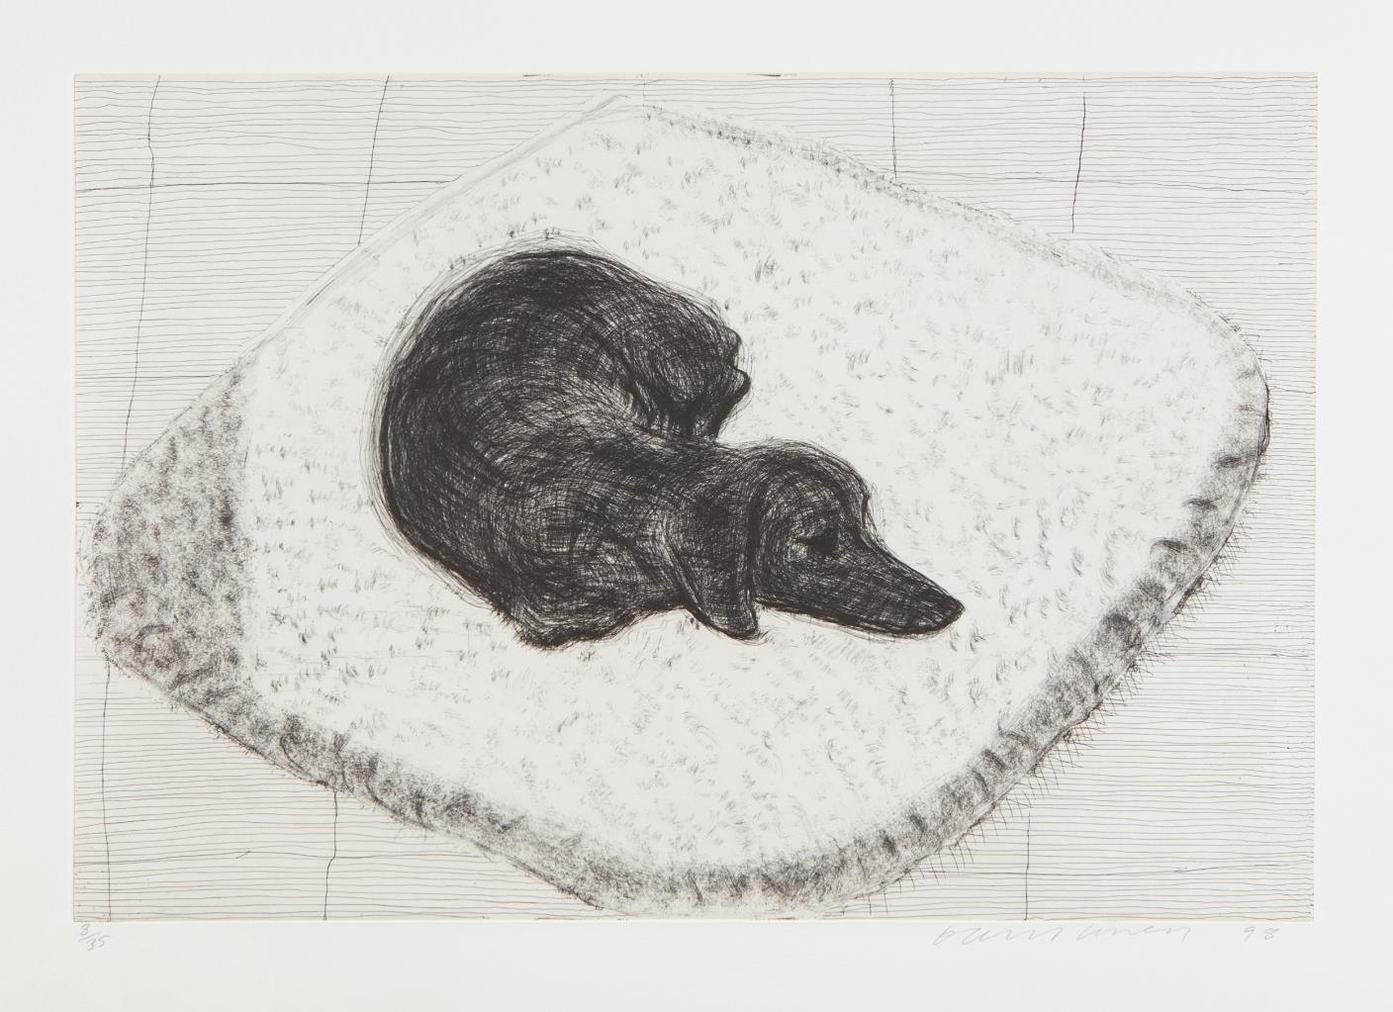 David Hockney-Dog Etching No. 12, From Dog Wall-1998